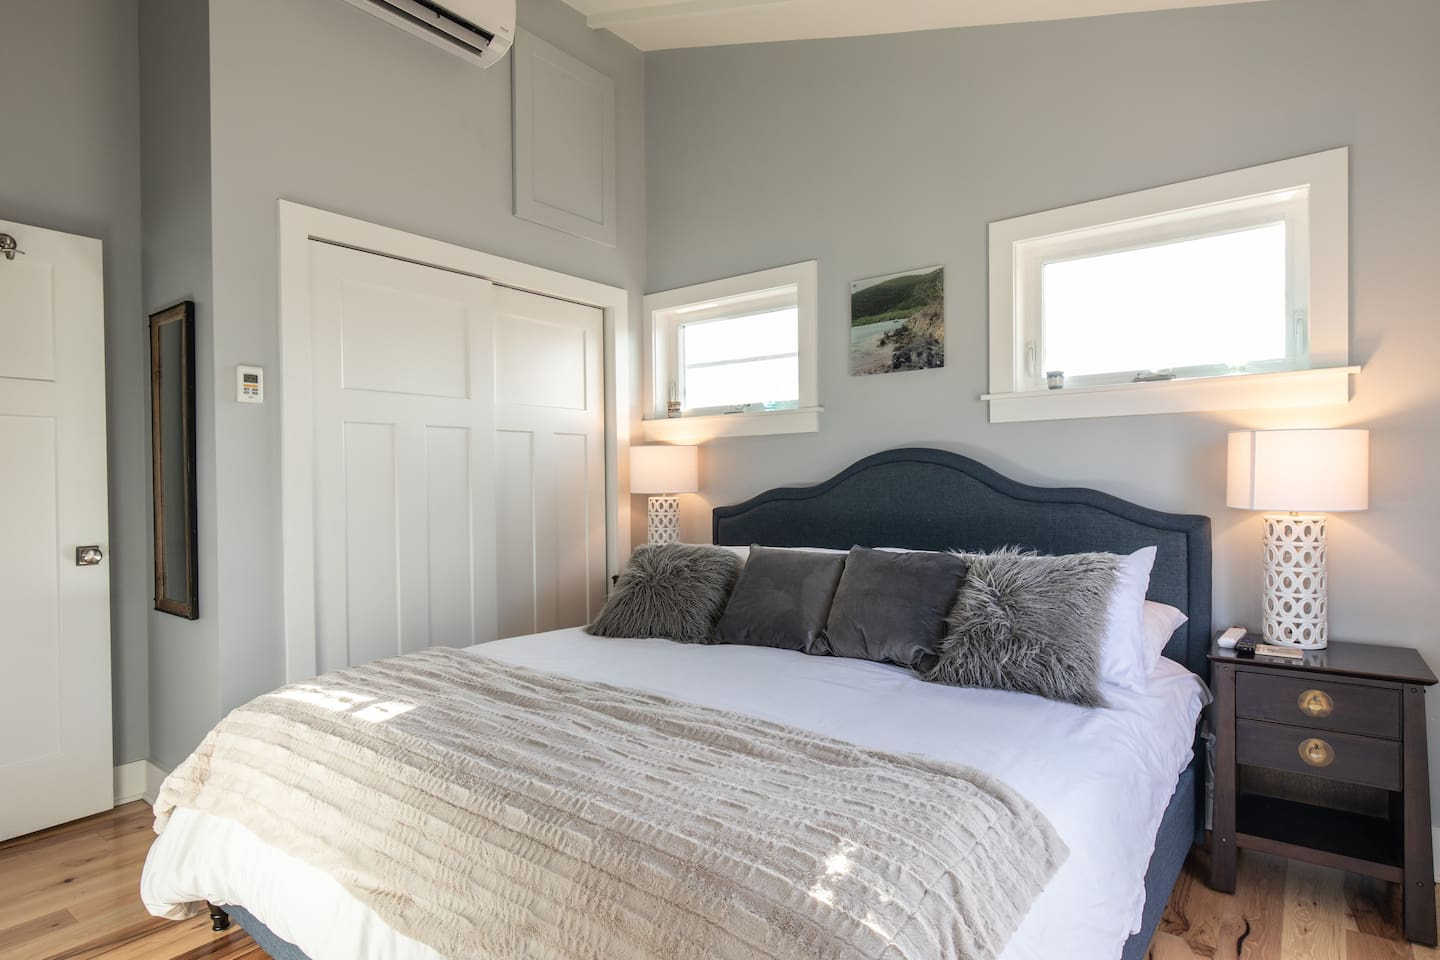 Comfy King bed with brand new sheets, smart TV, desk, a great view of Santa Monica and a walk in shower!